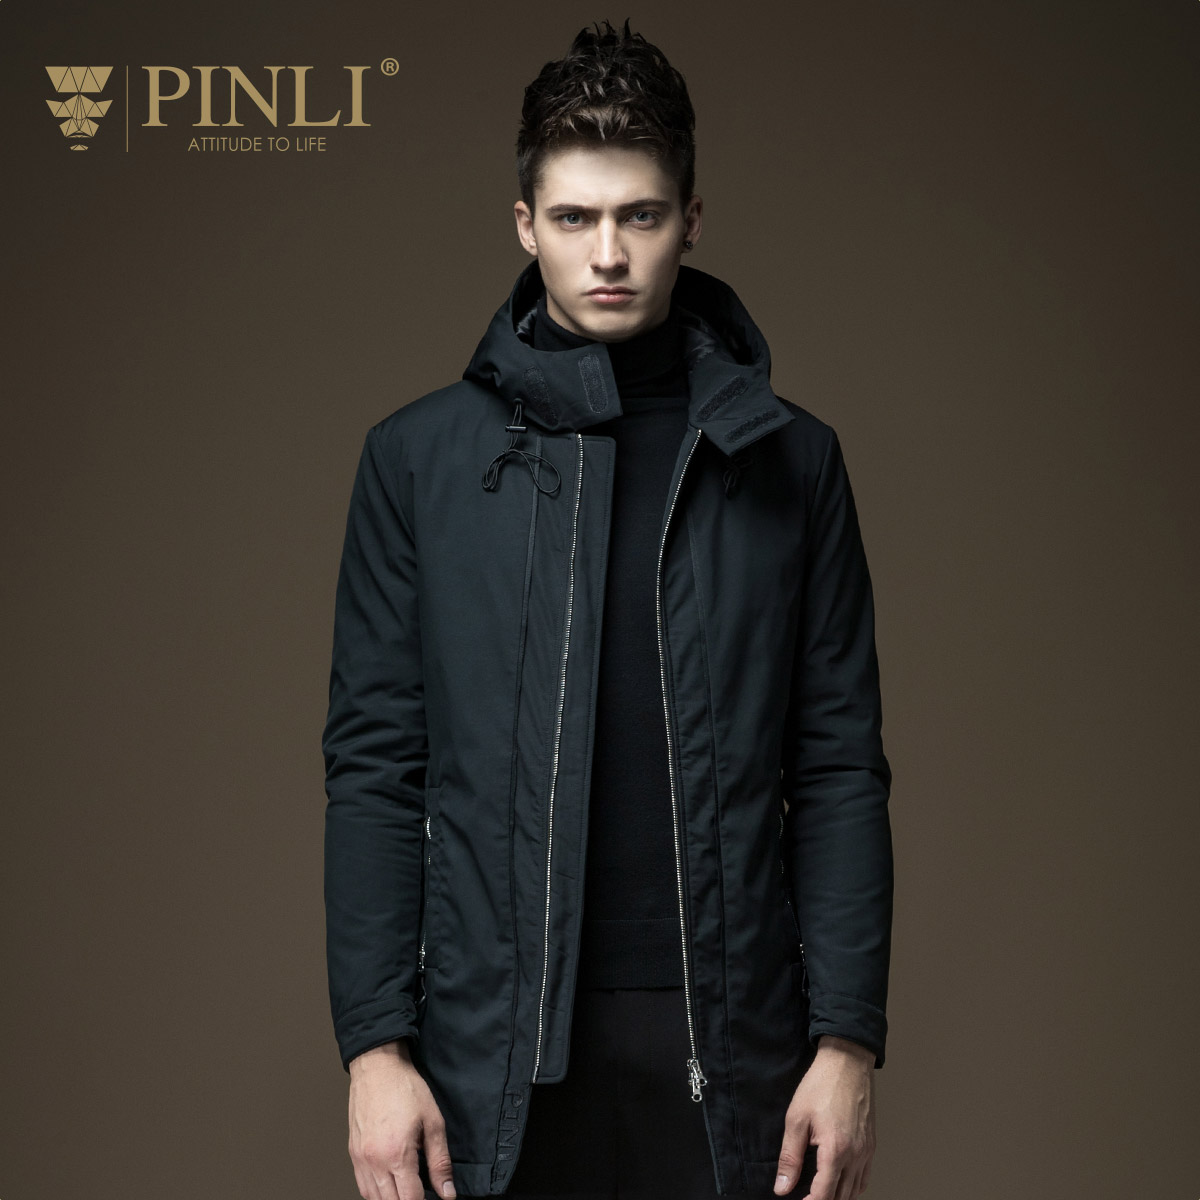 Winter Jackets Mens Mens Limited Pinli Autumn New Arrival Men's Clothing Zipper Color Wadded Jacket Outerwear Male D163605002